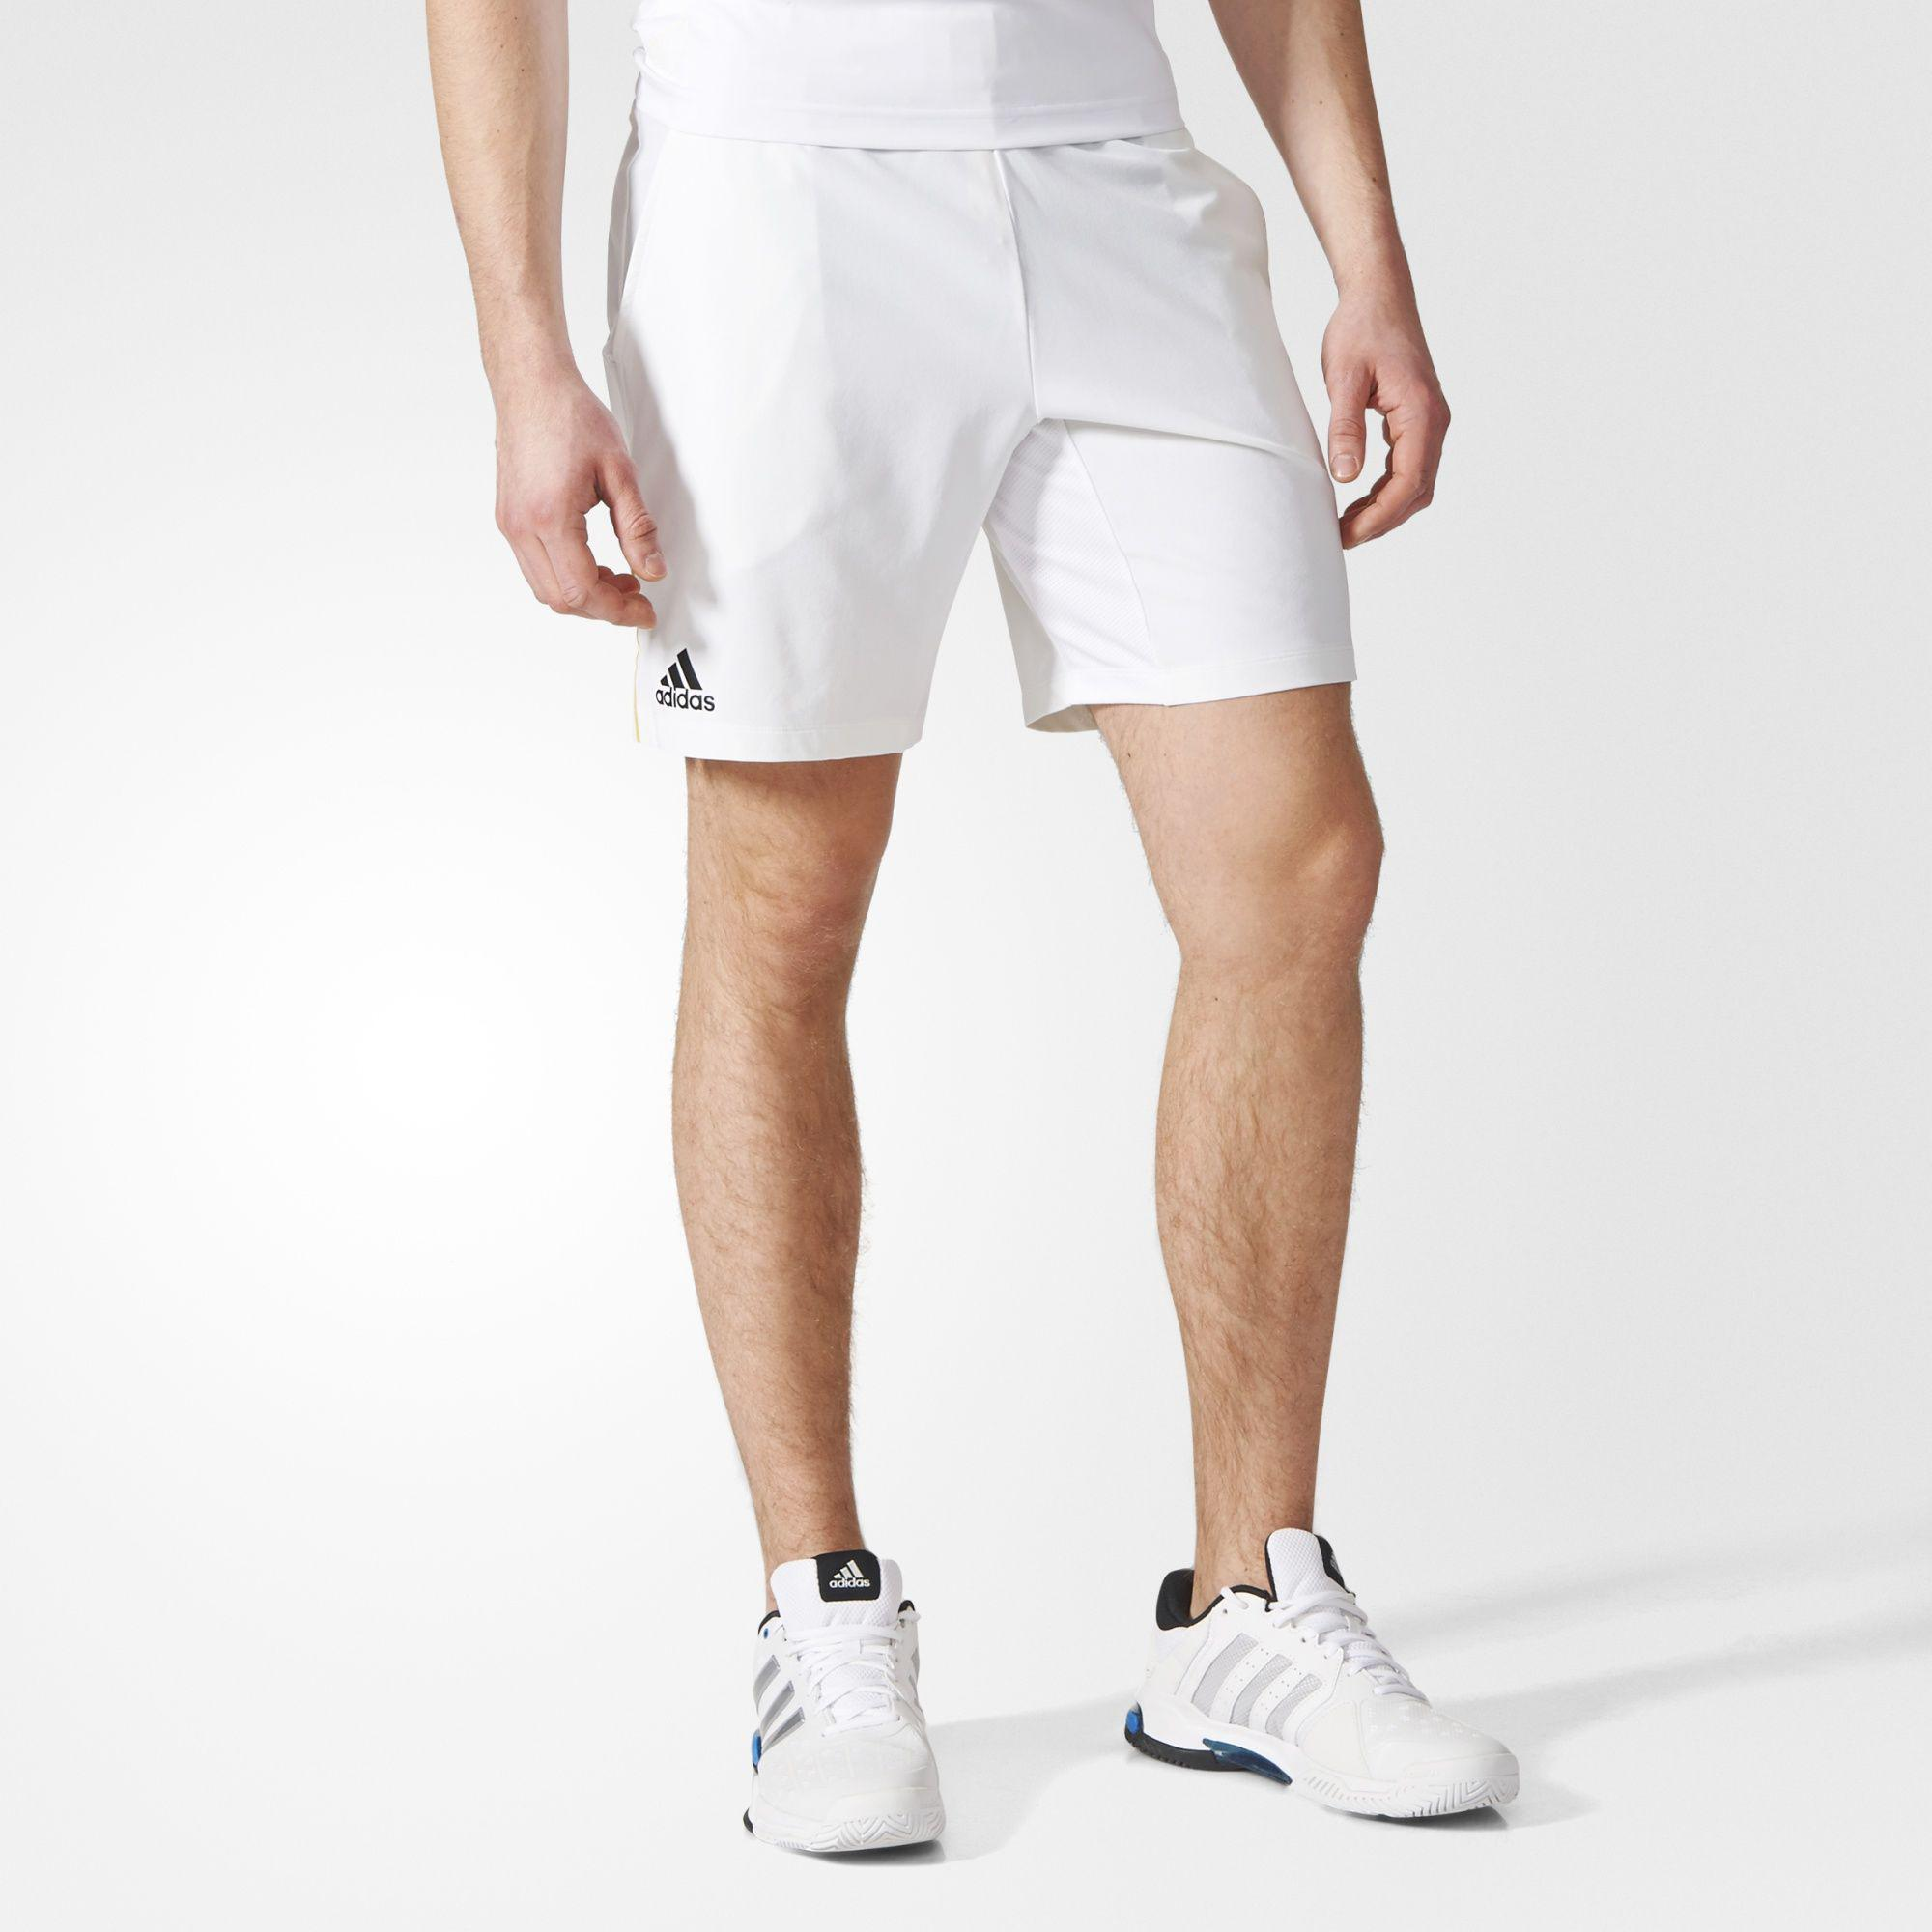 2a284bdfab8 Adidas MEN TENNIS LONDON SHORTS - Just Squash